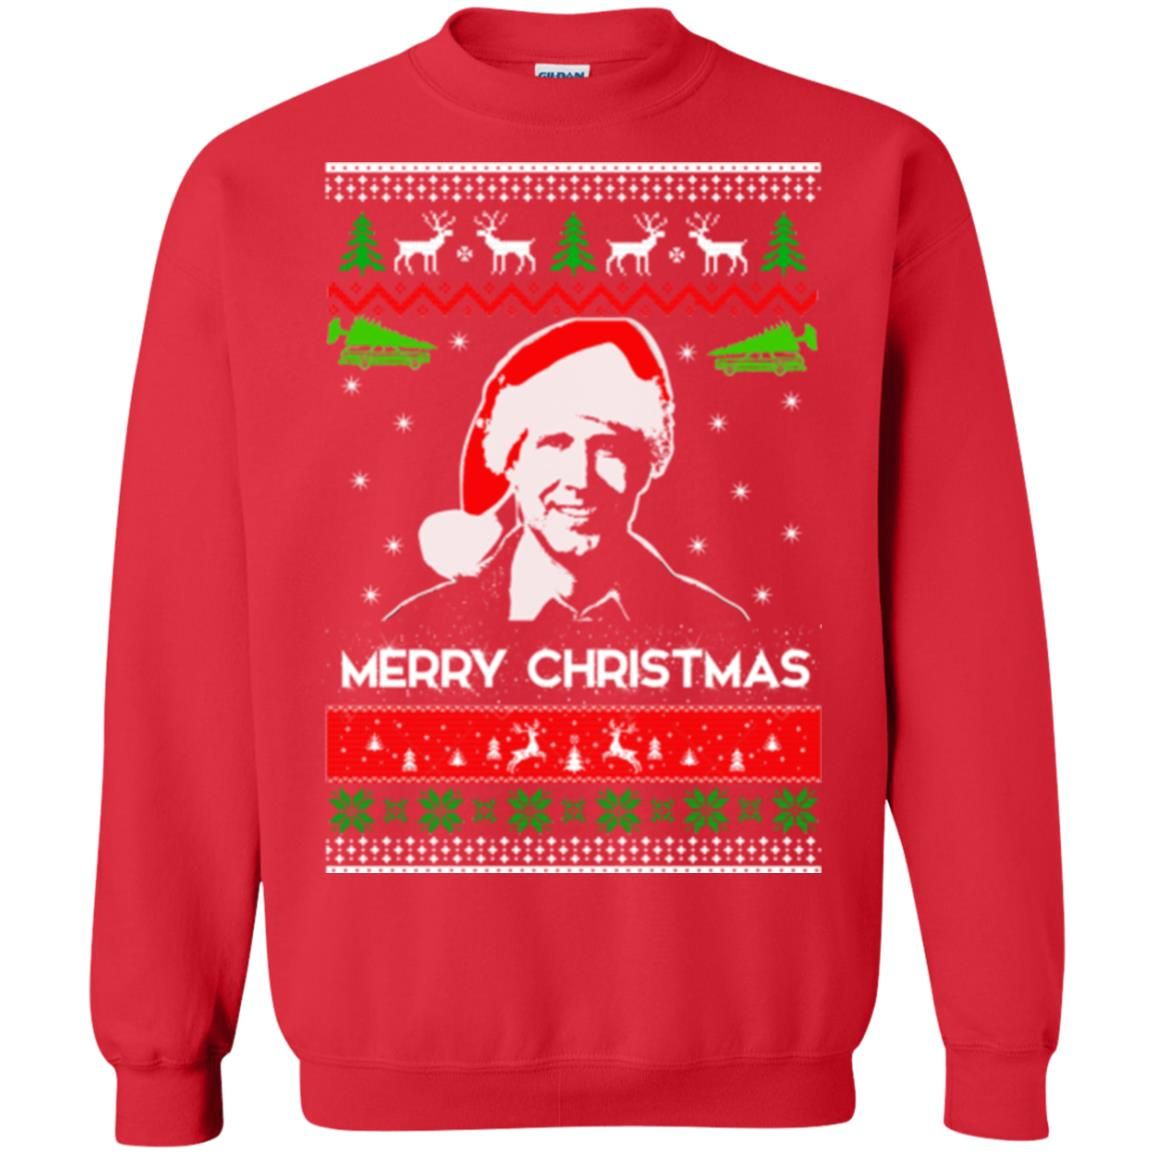 image 1713 - Clark Griswold: Merry Christmas ugly Sweatshirt, long sleeve